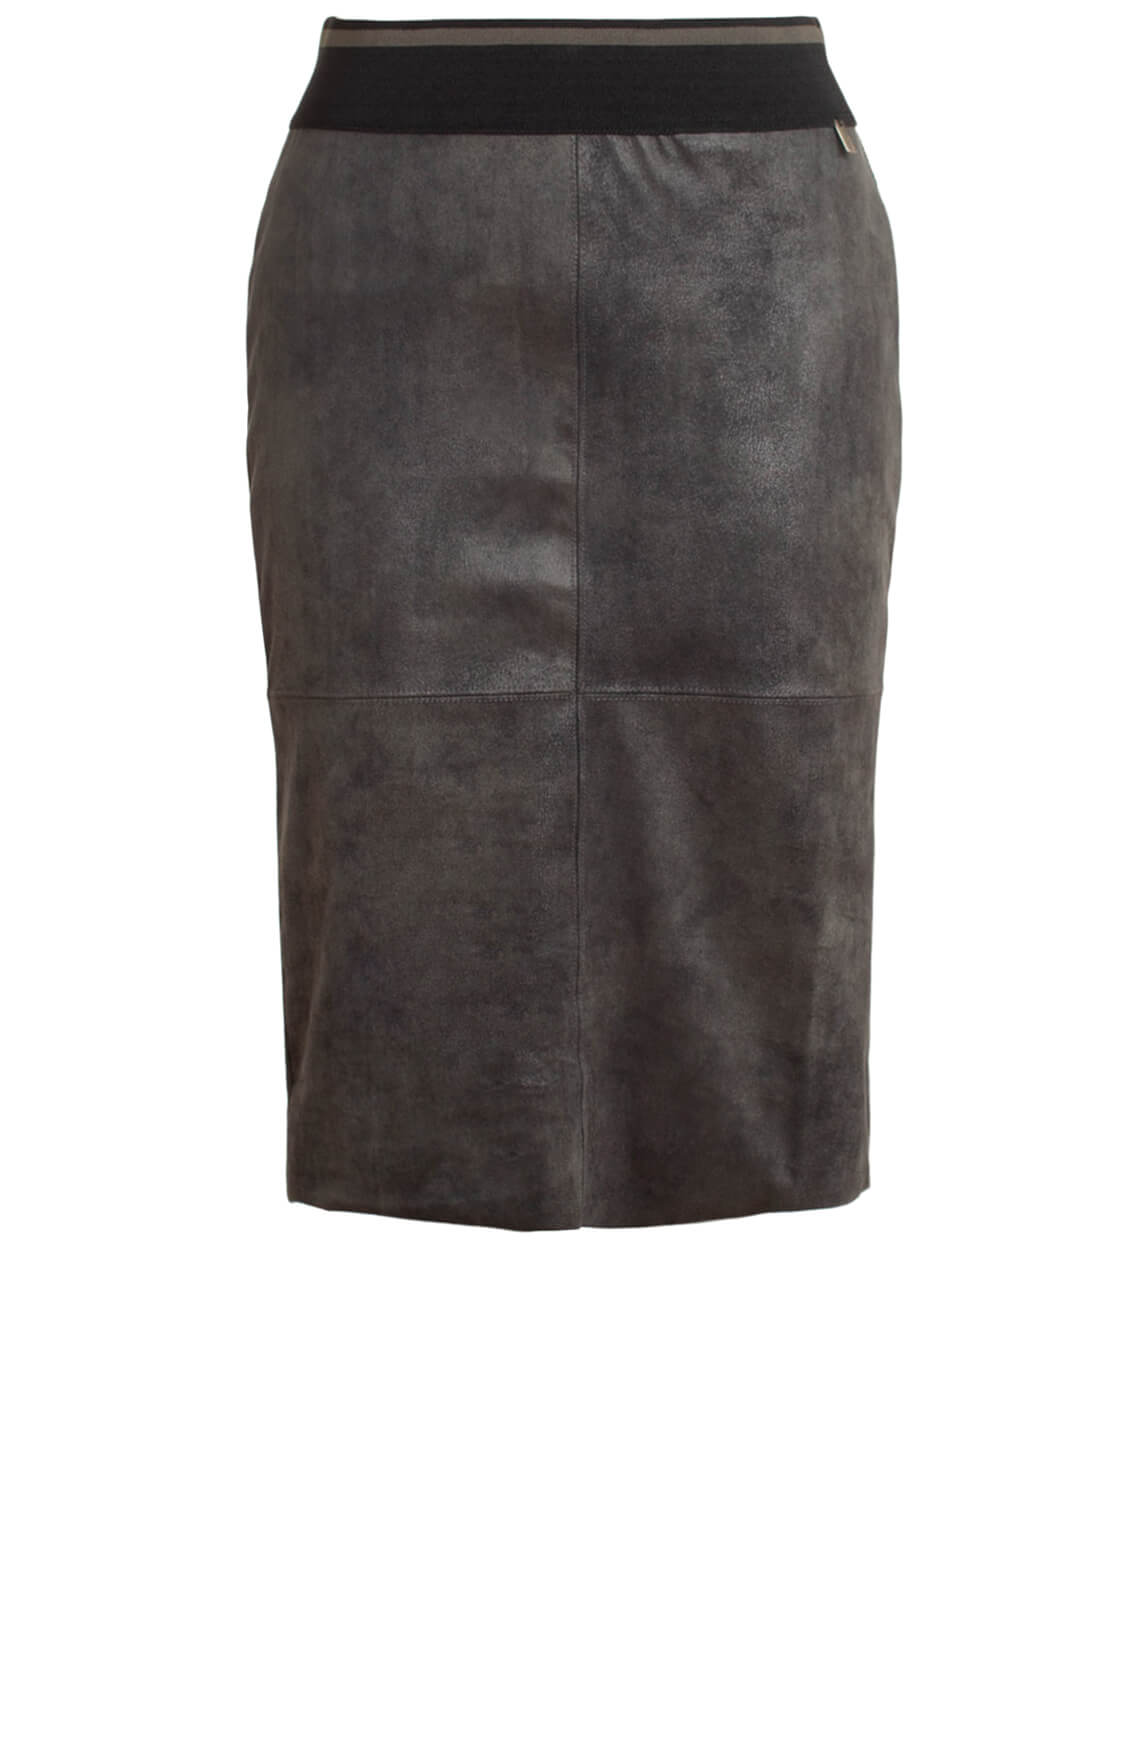 Anna Dames Fake leather rok groen